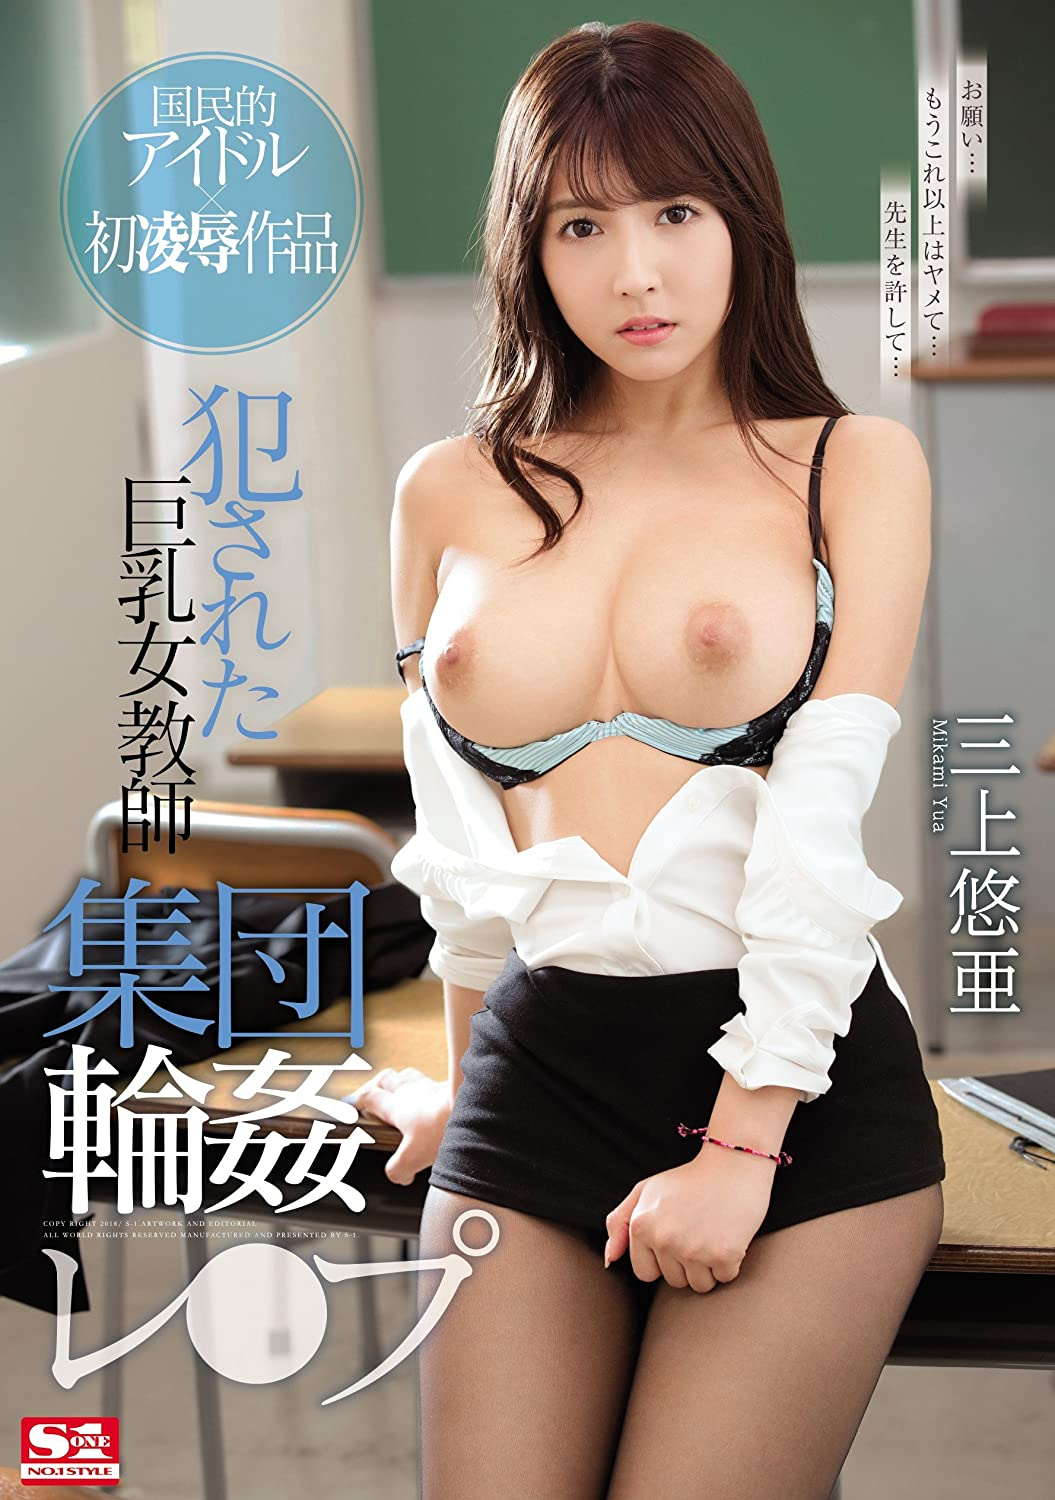 [SSNI-152] (English subbed) (Full) The Rape Of A Big Tits Female Teacher A Massive Gang Bang Rape Yua Mikami